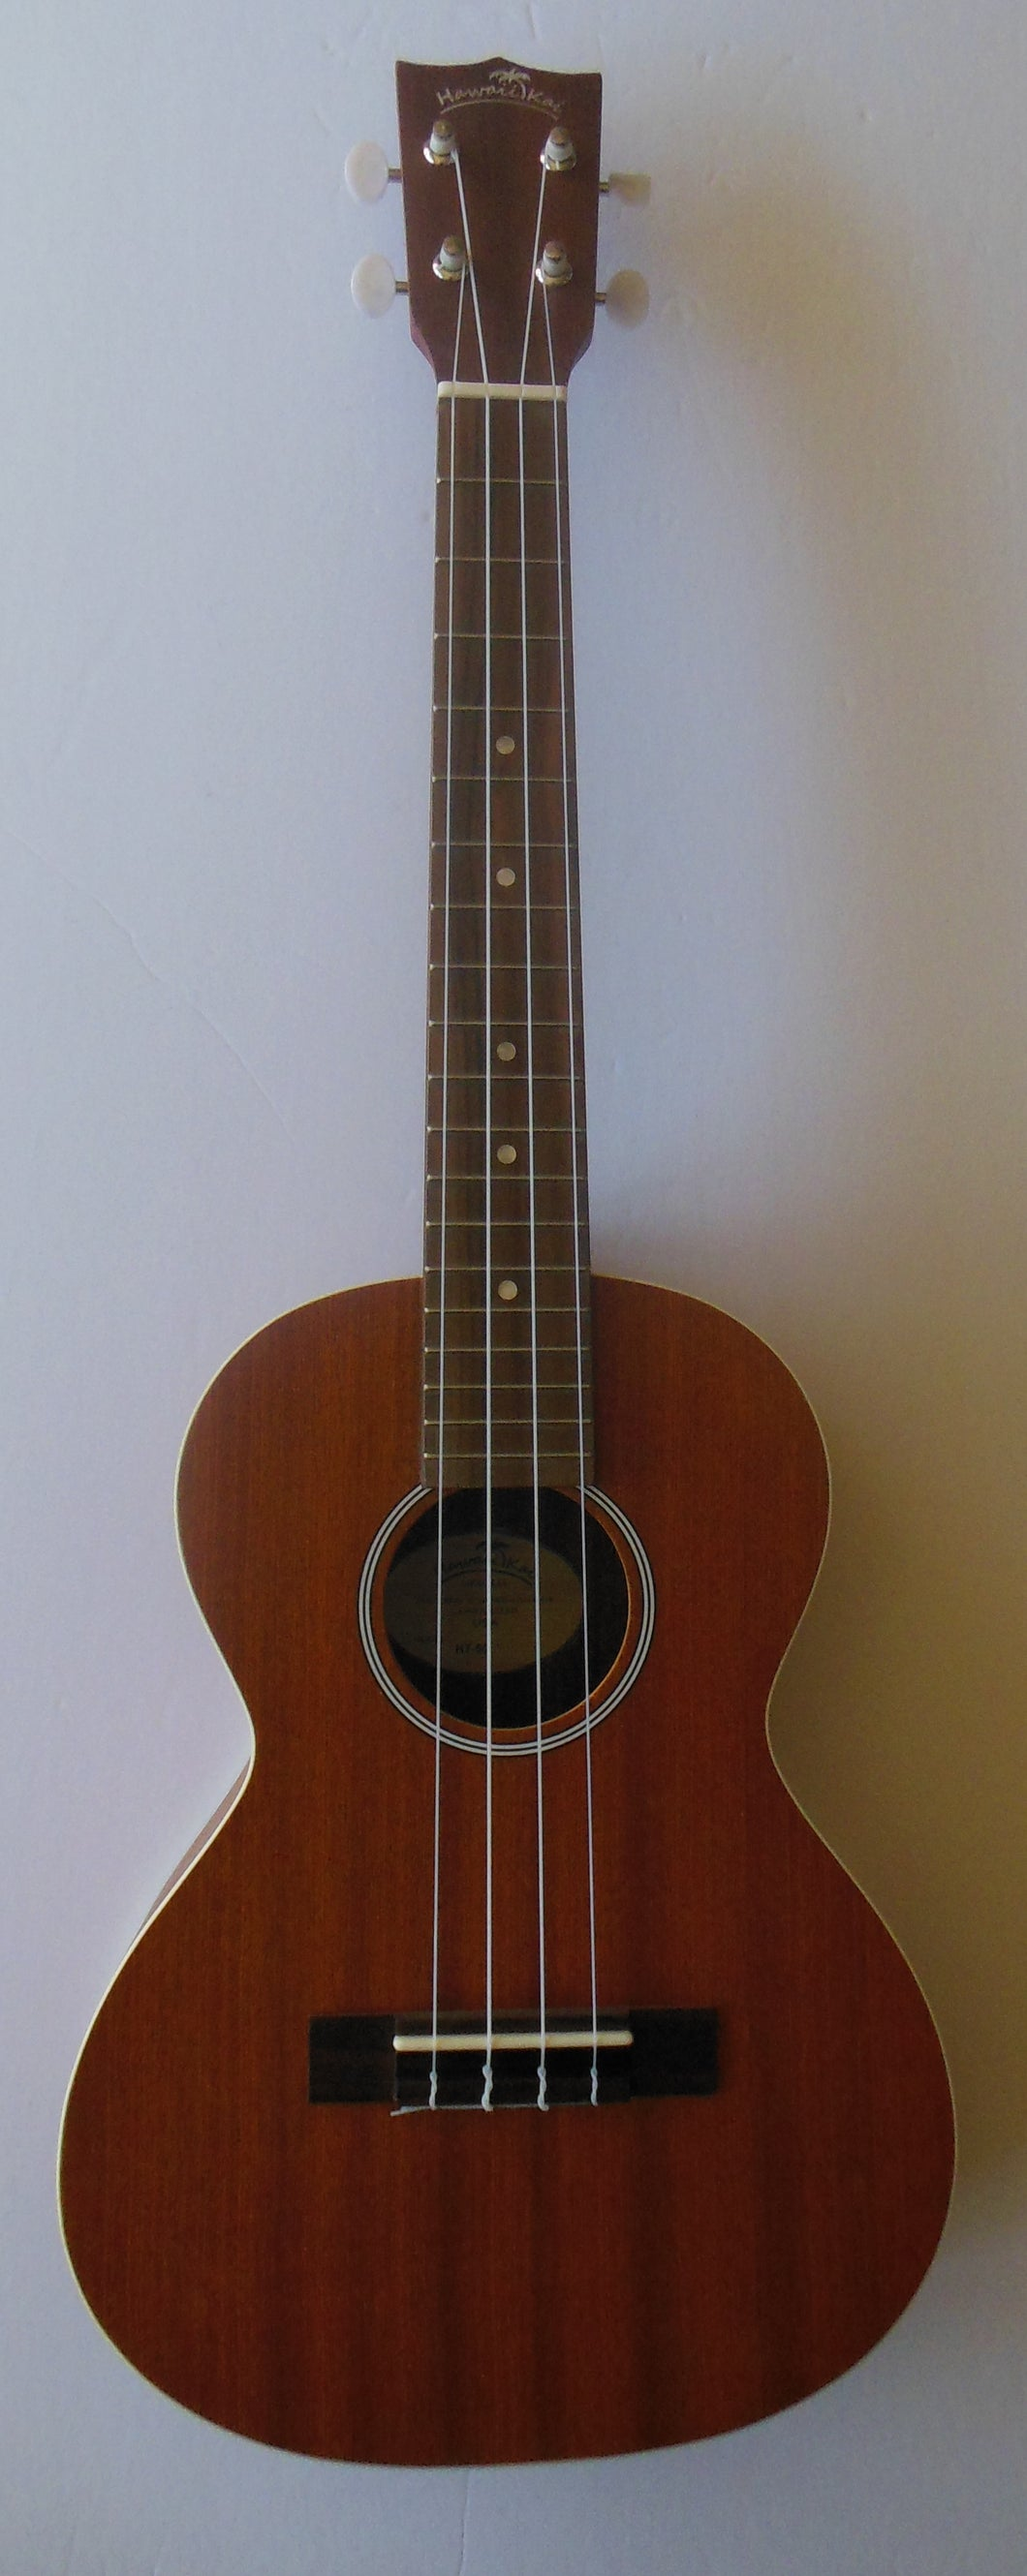 Hawaii Kai HT-50 Mahogany Tenor Ukulele w/ ABS Binding